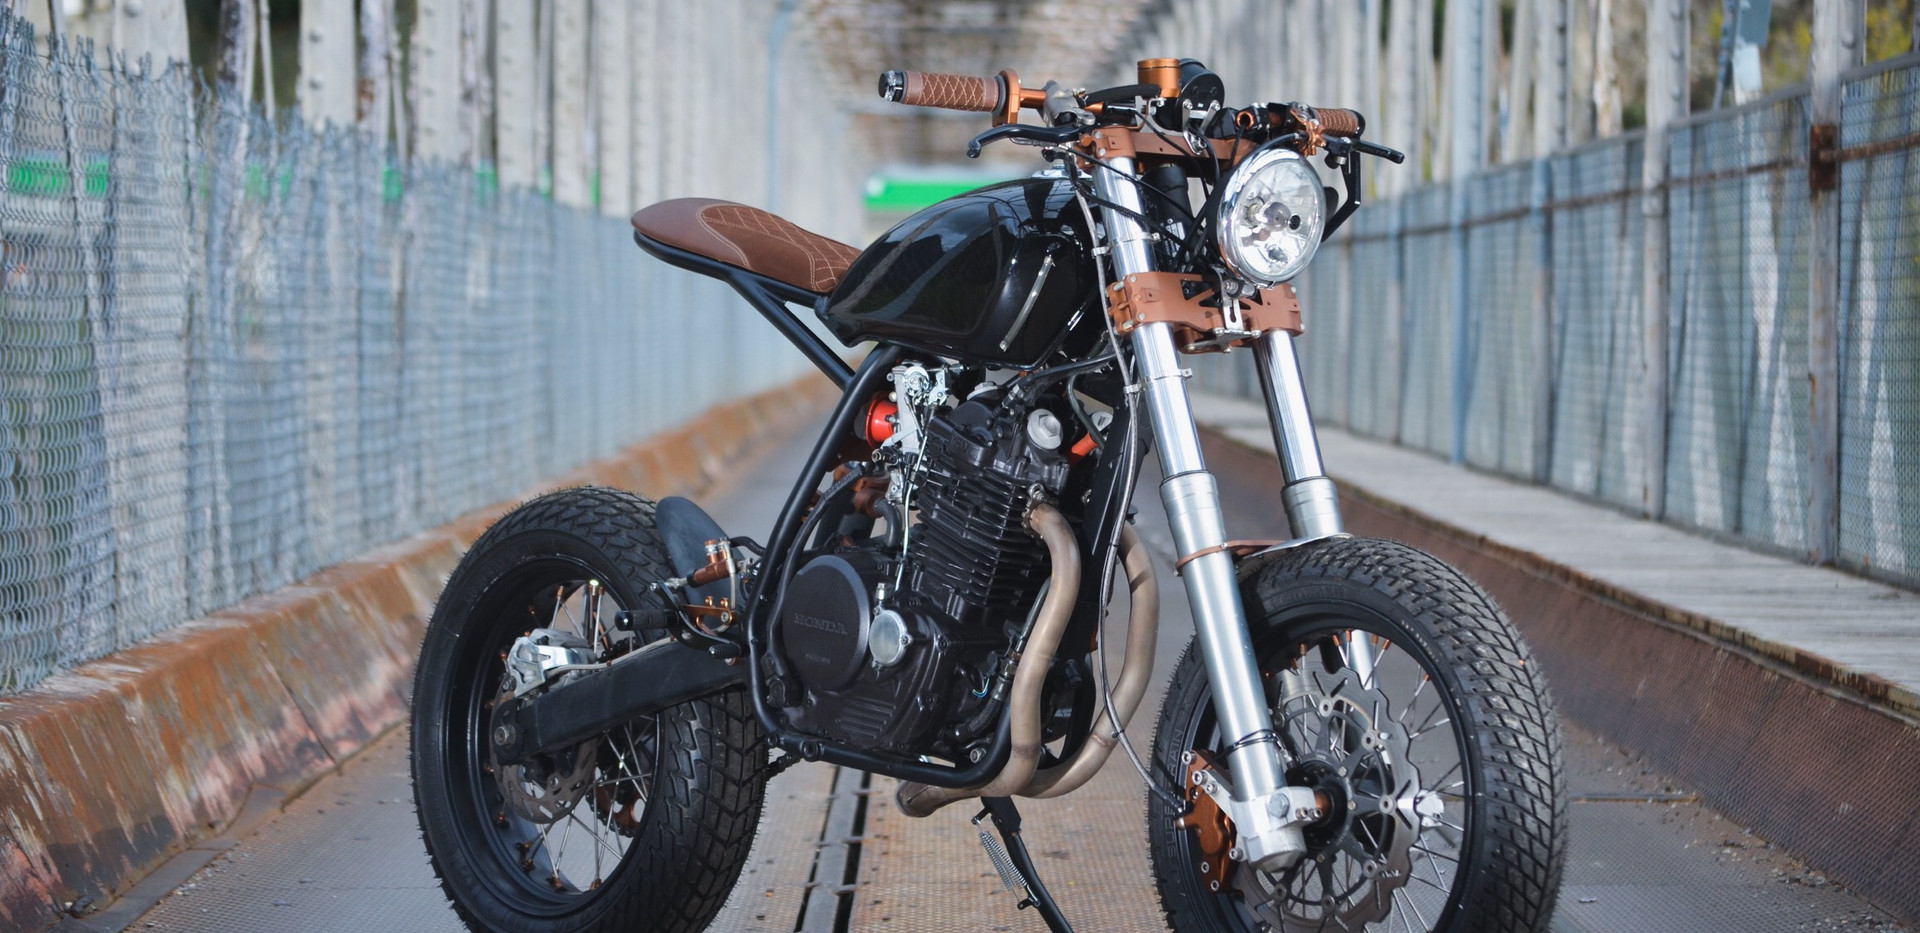 honda xr 600 duke motorcycle nice